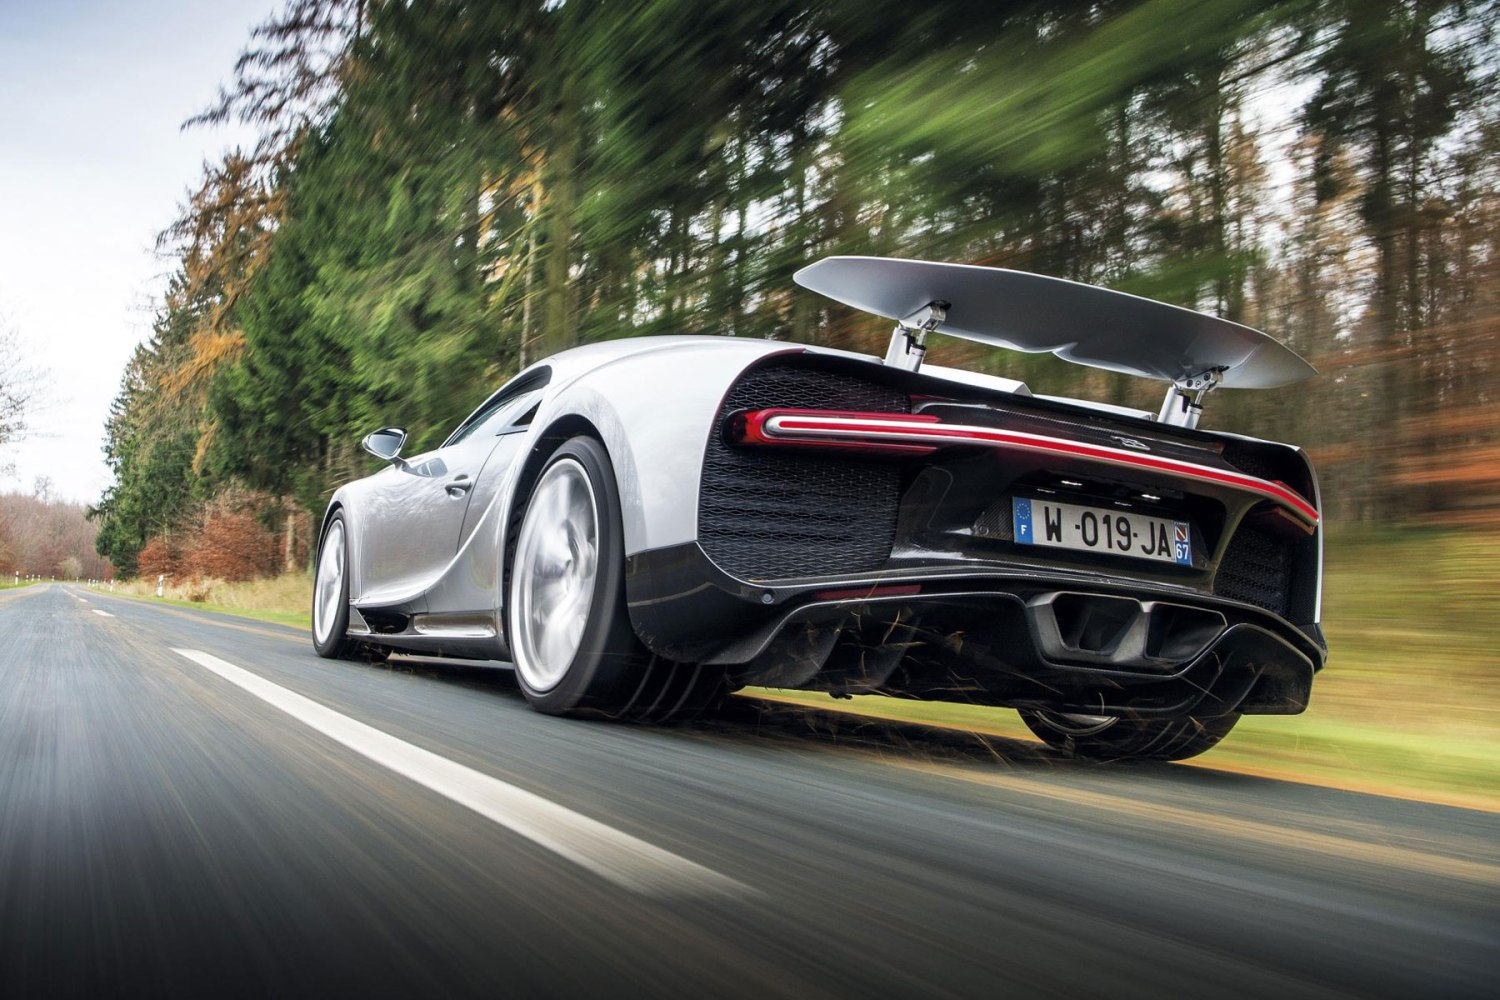 Bugatti Chiron – less than 2.5 seconds